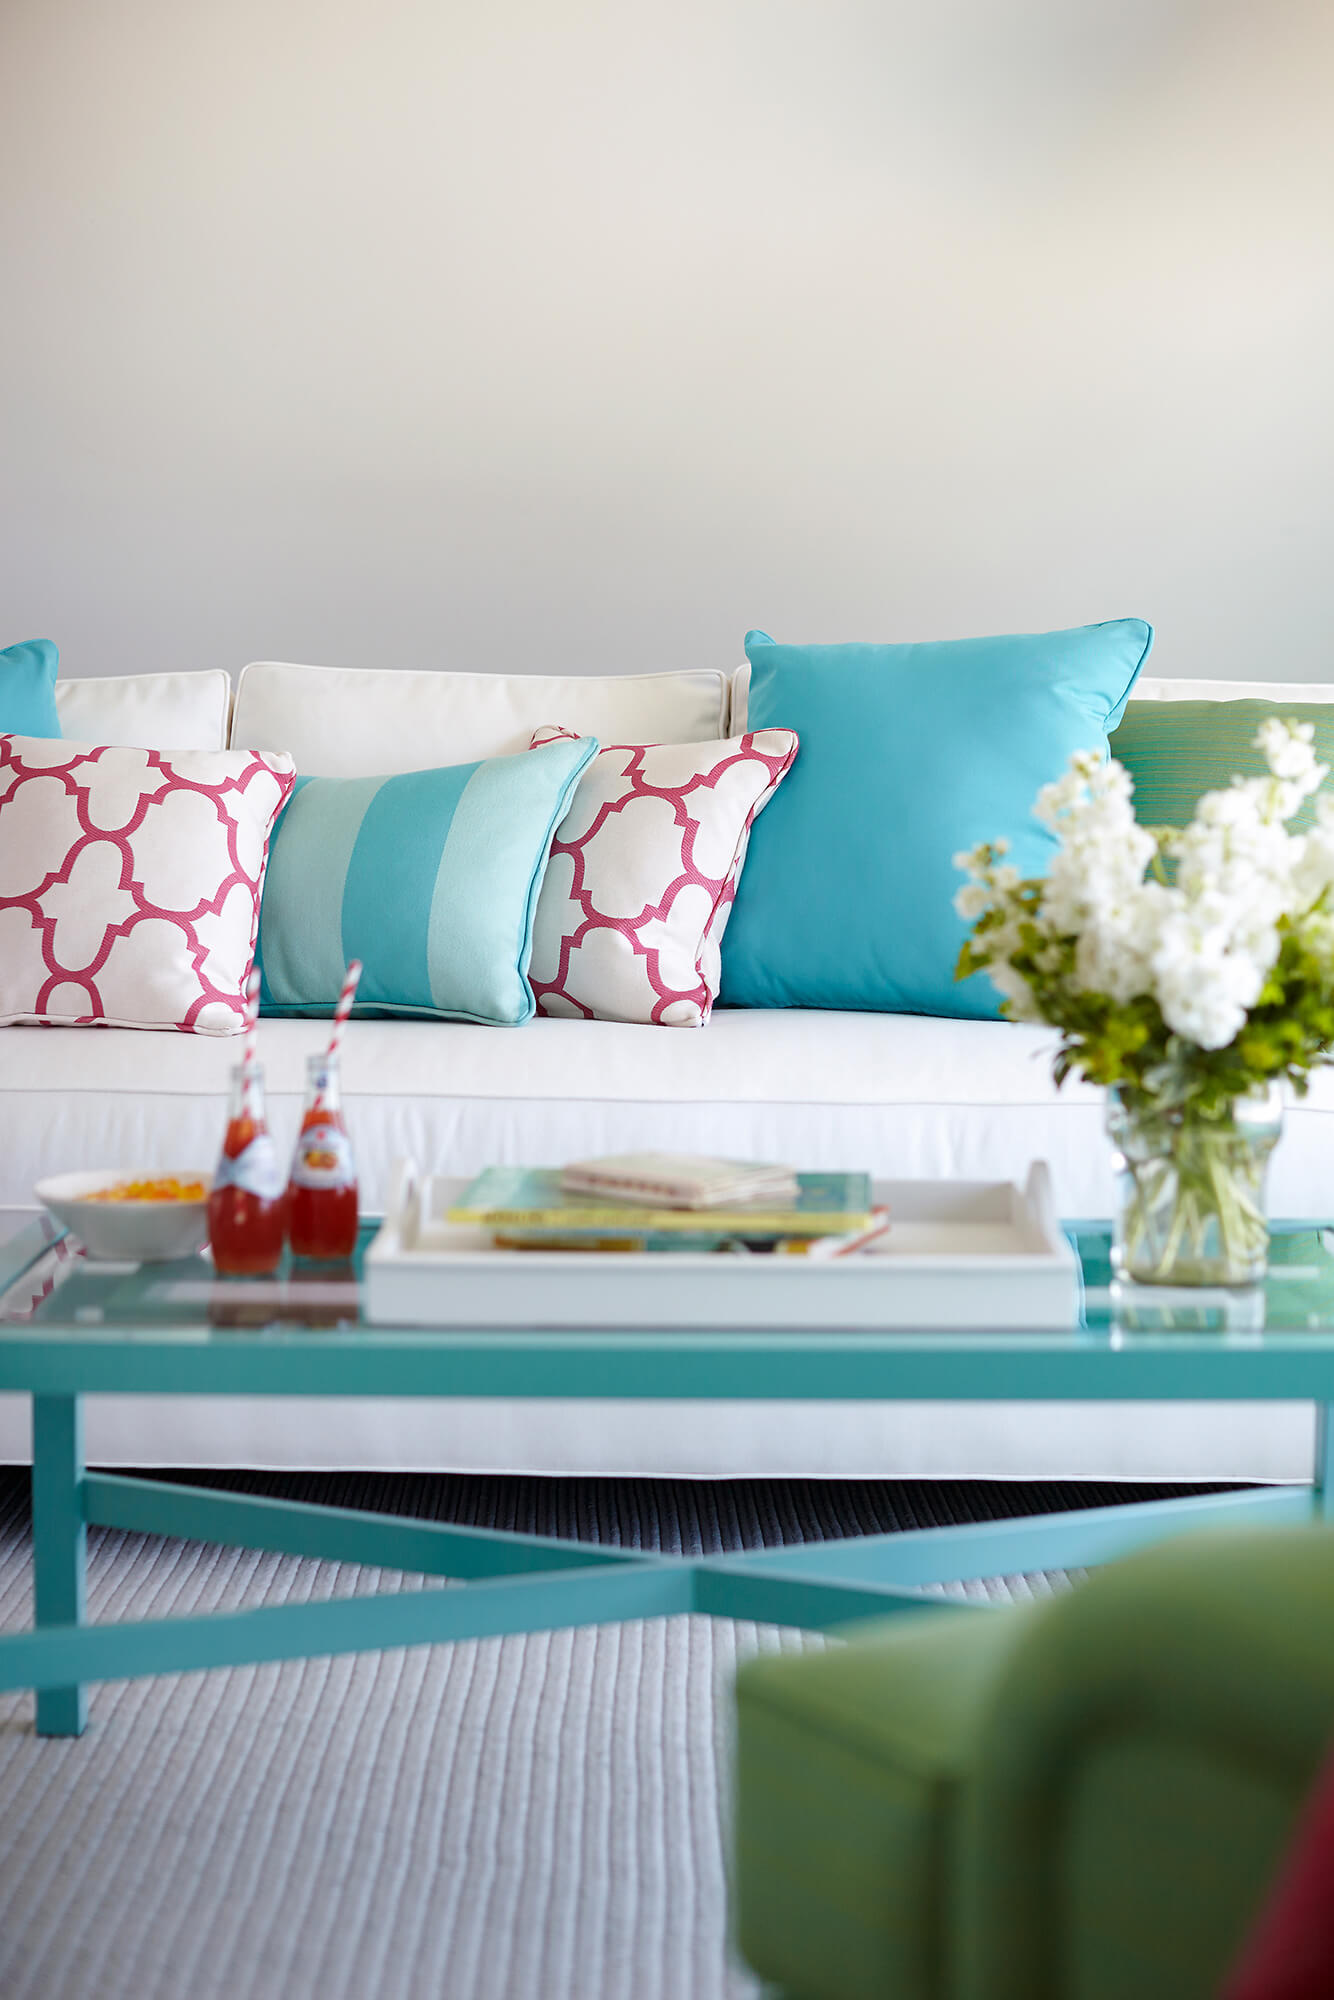 Living room with pastel shades of pink, green, and blue is soft and chic